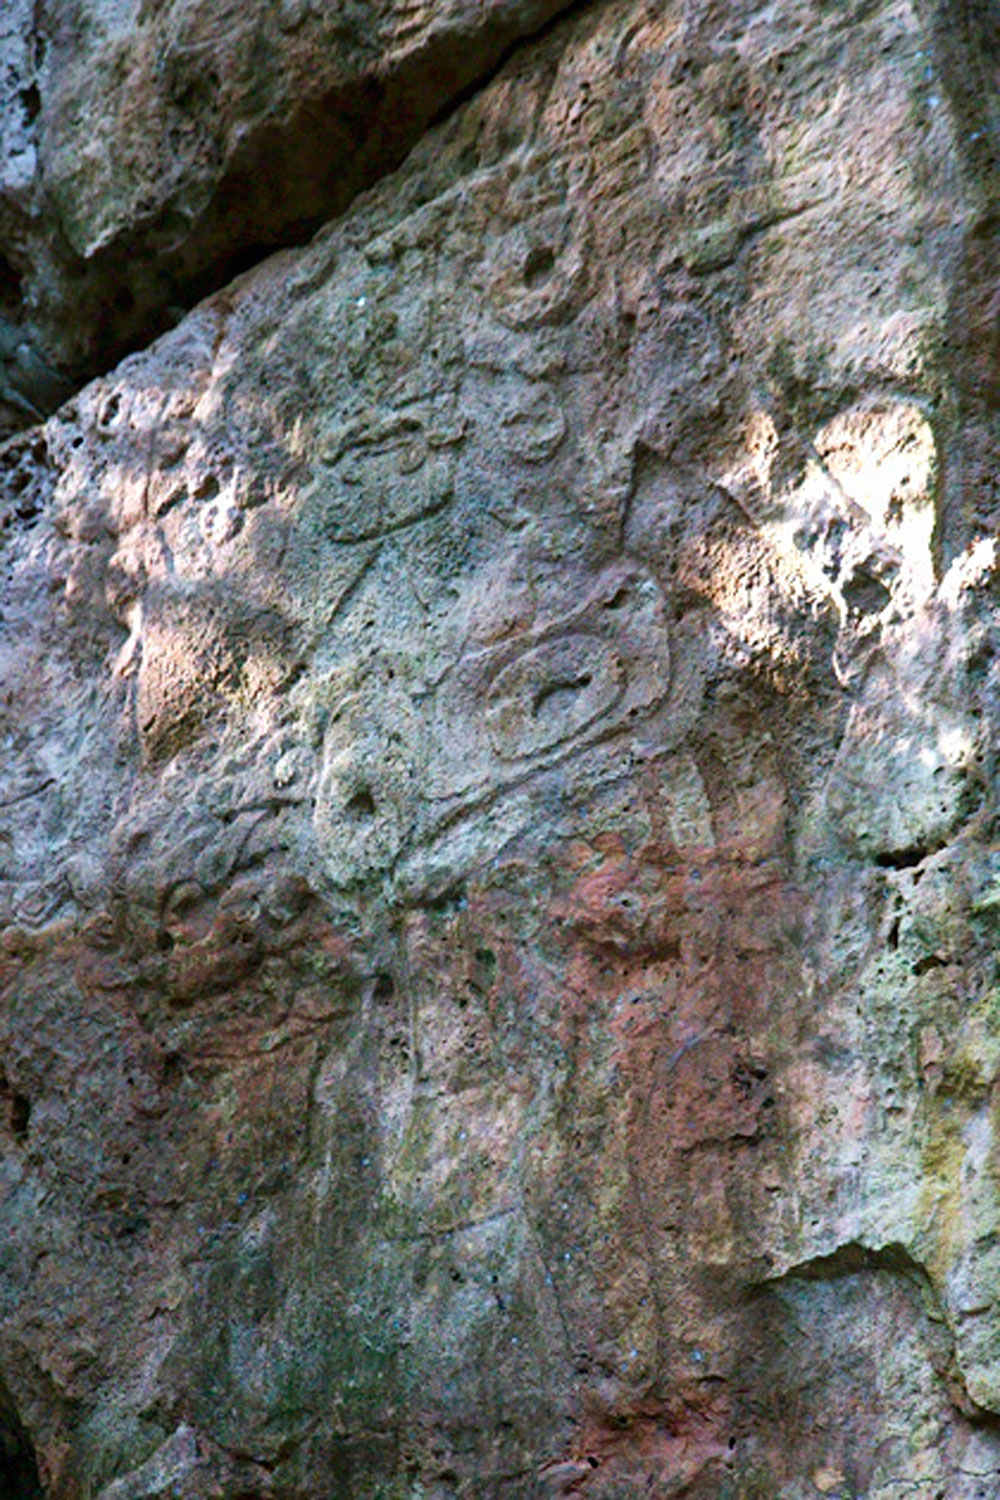 Nahcab Warrior. It is not easy to see the outline of the figure.